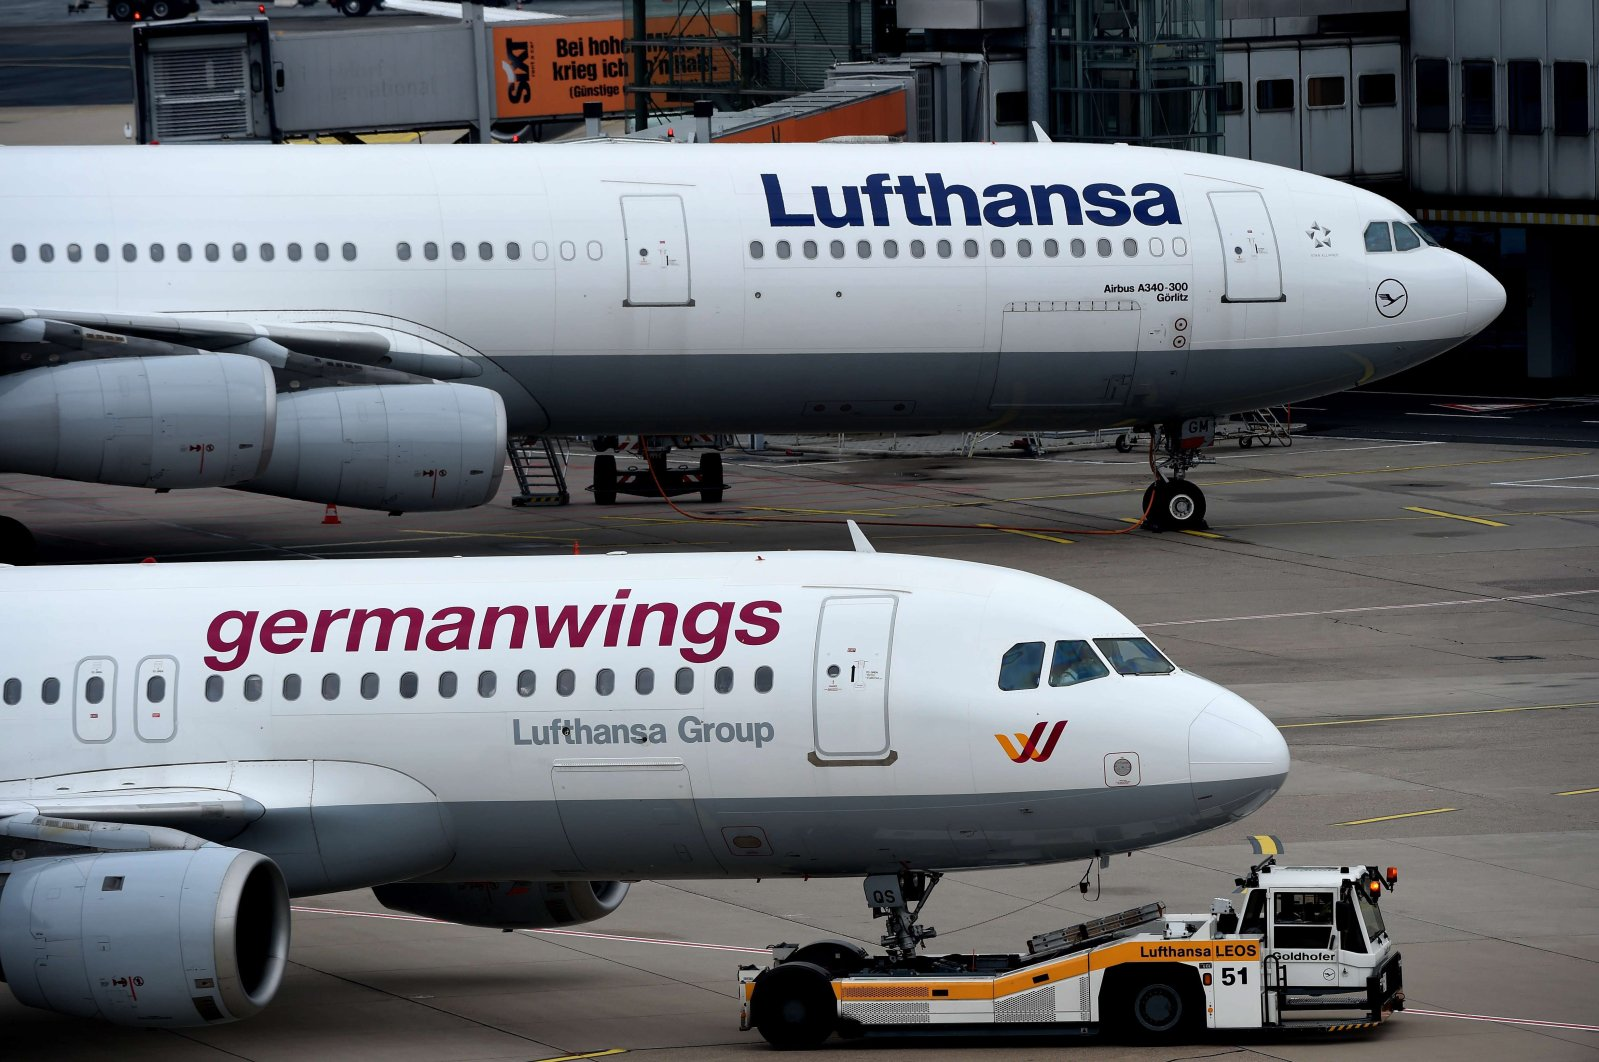 An Airbus plane of German airline Lufthansa (top) and a plane of the company's Germanwings subsidiary are pictured at the Duesseldorf airport in Duesseldorf, western Germany, March 26, 2015. (AFP Photo)